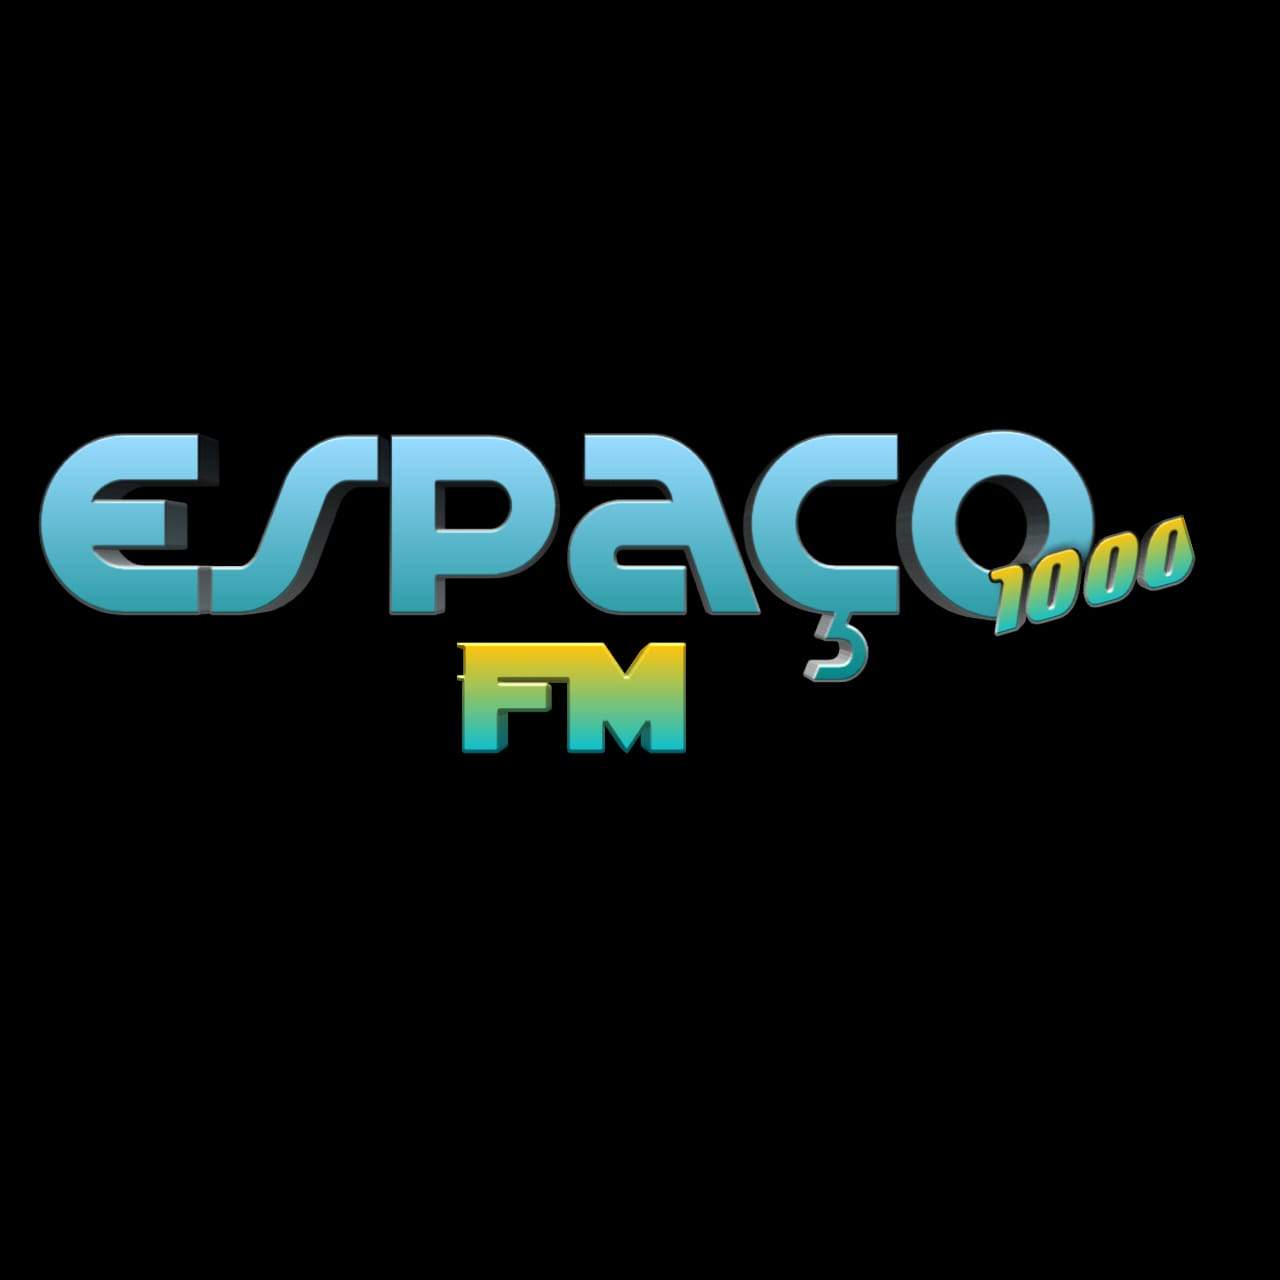 ESPAÇO MIL FM